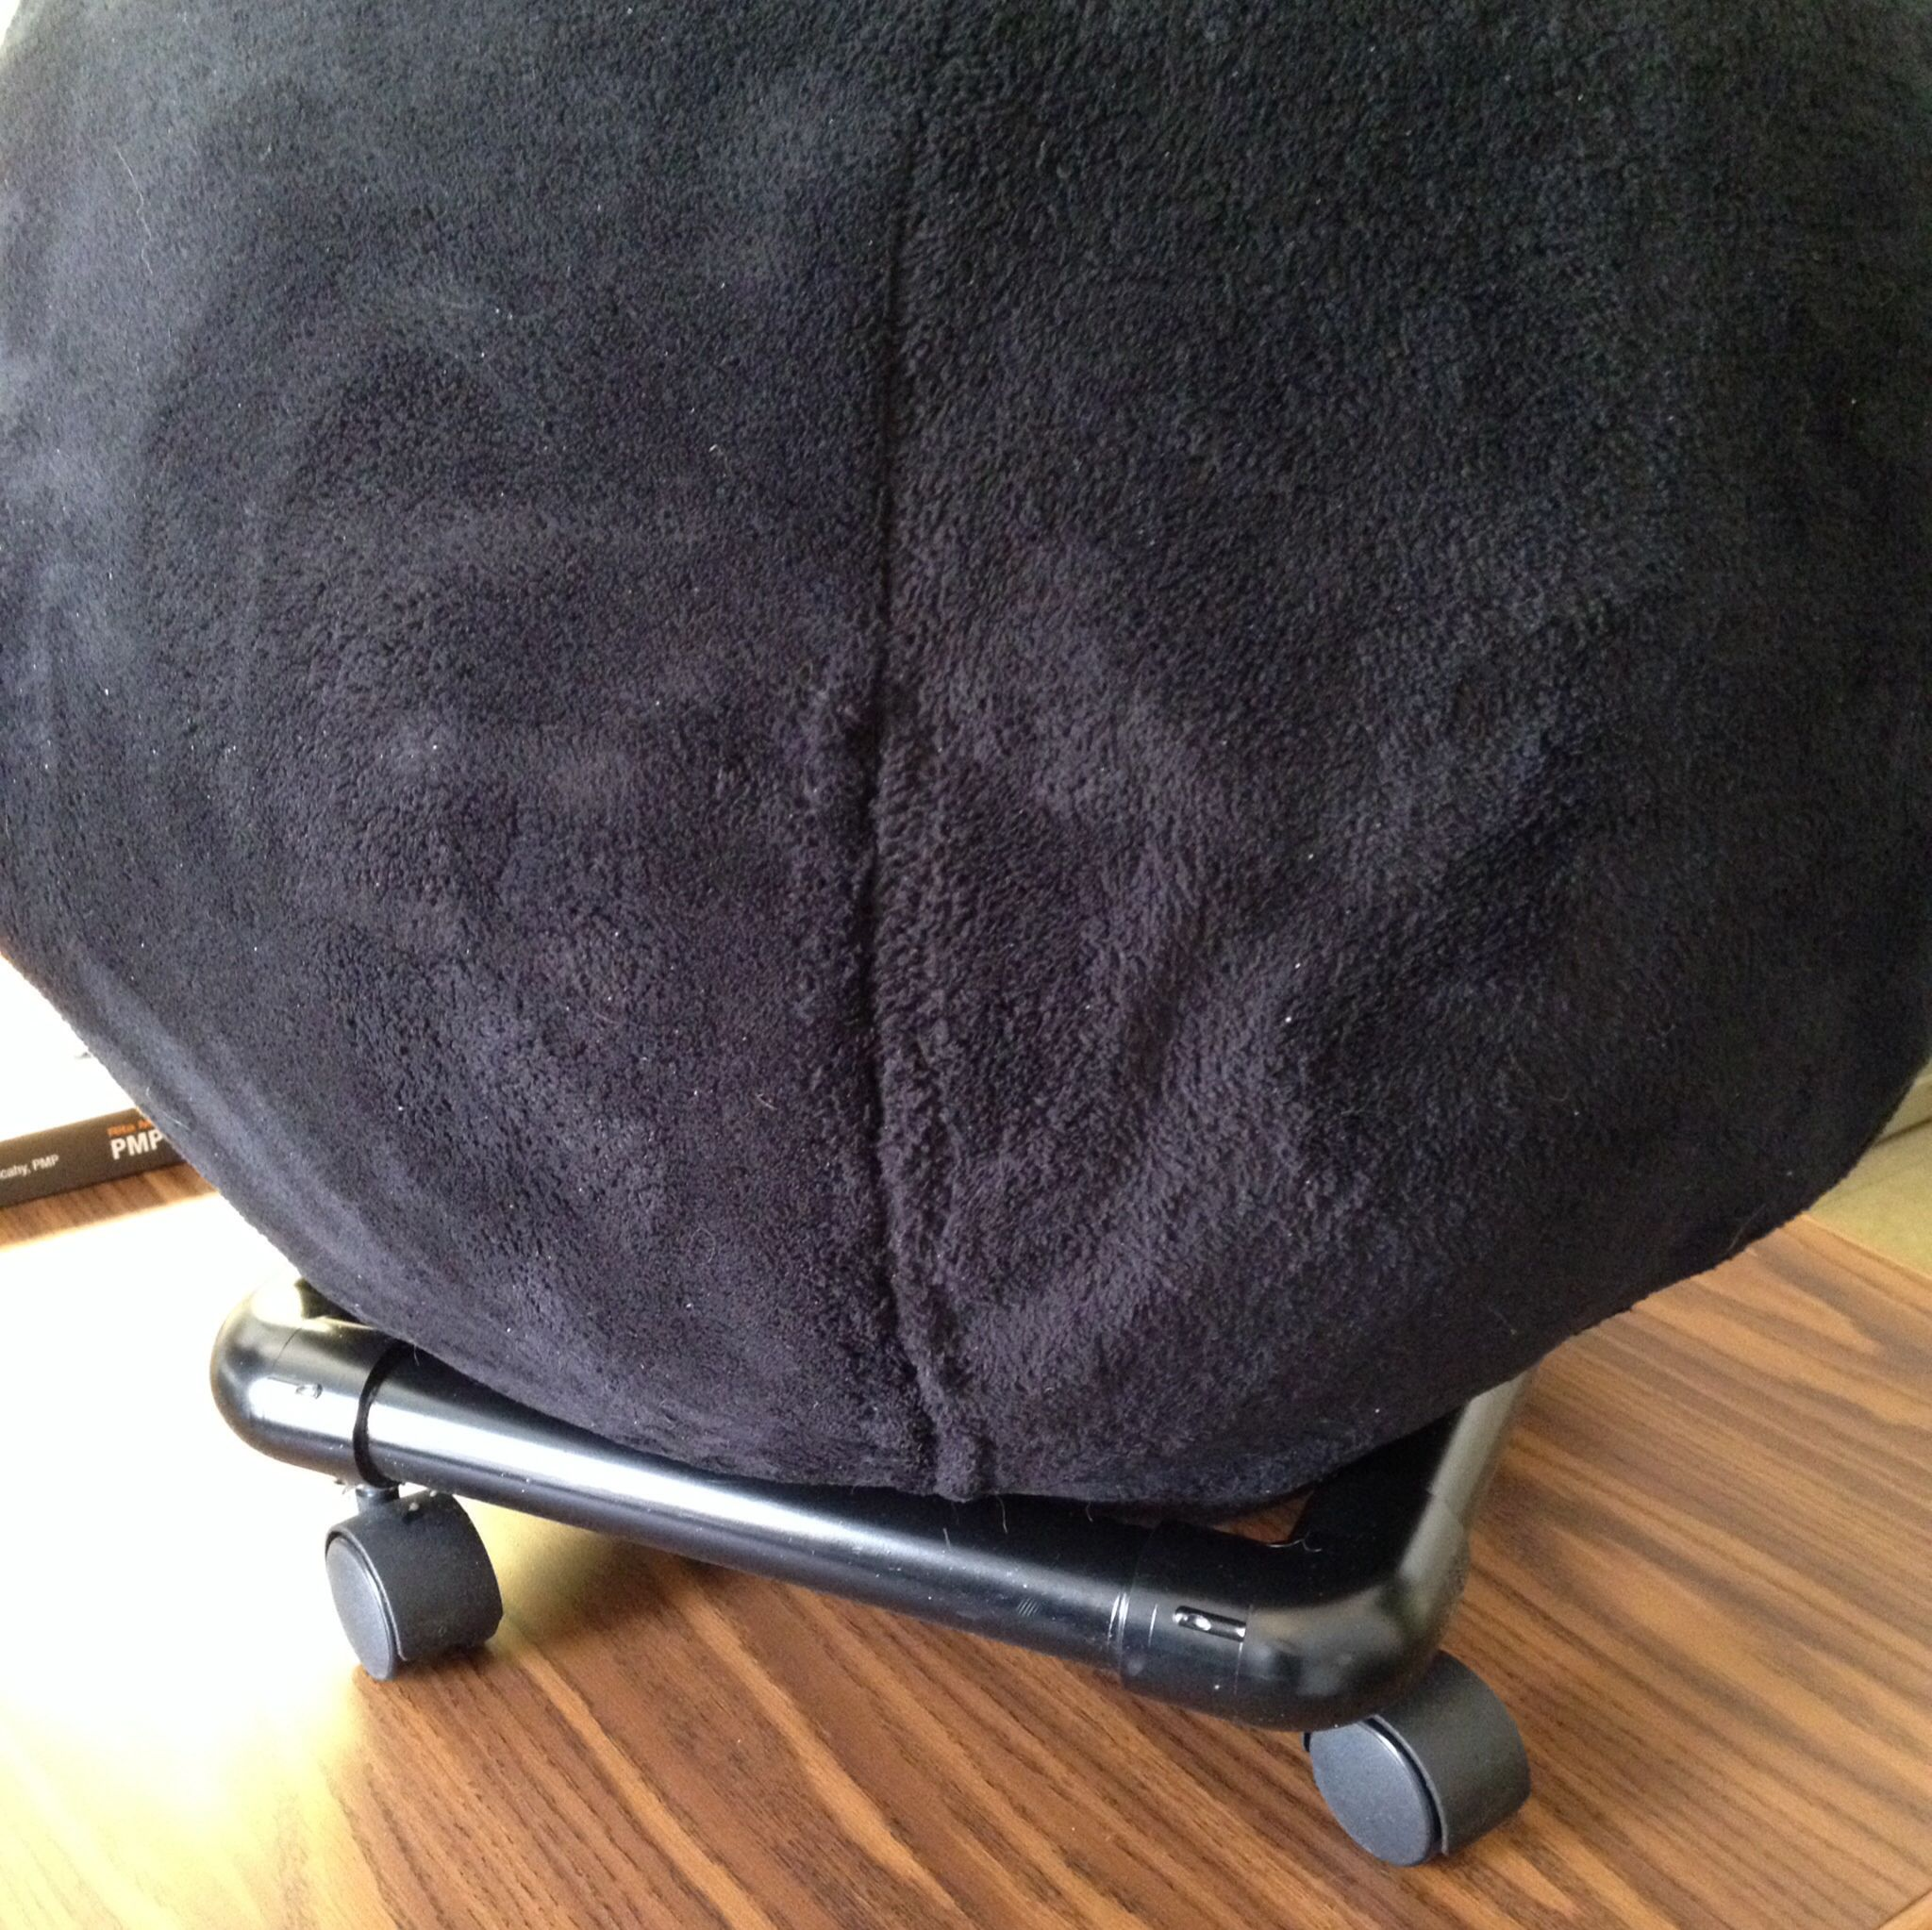 Balance Ball Desk Chair Ball Chair Exercise Ball Chairs Balance Ball Chair